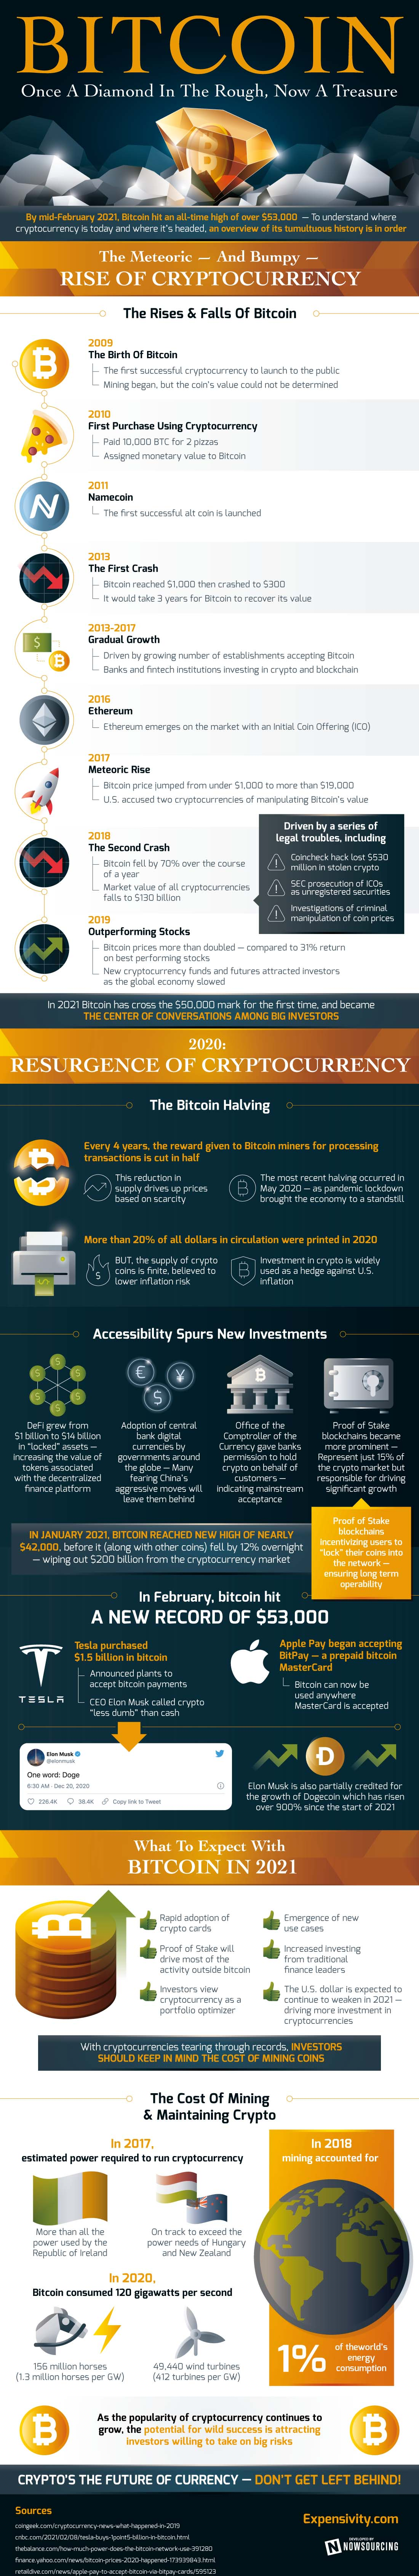 Bitcoin: Stats and Facts - Is Bitcoin The New Gold? [Infographic]